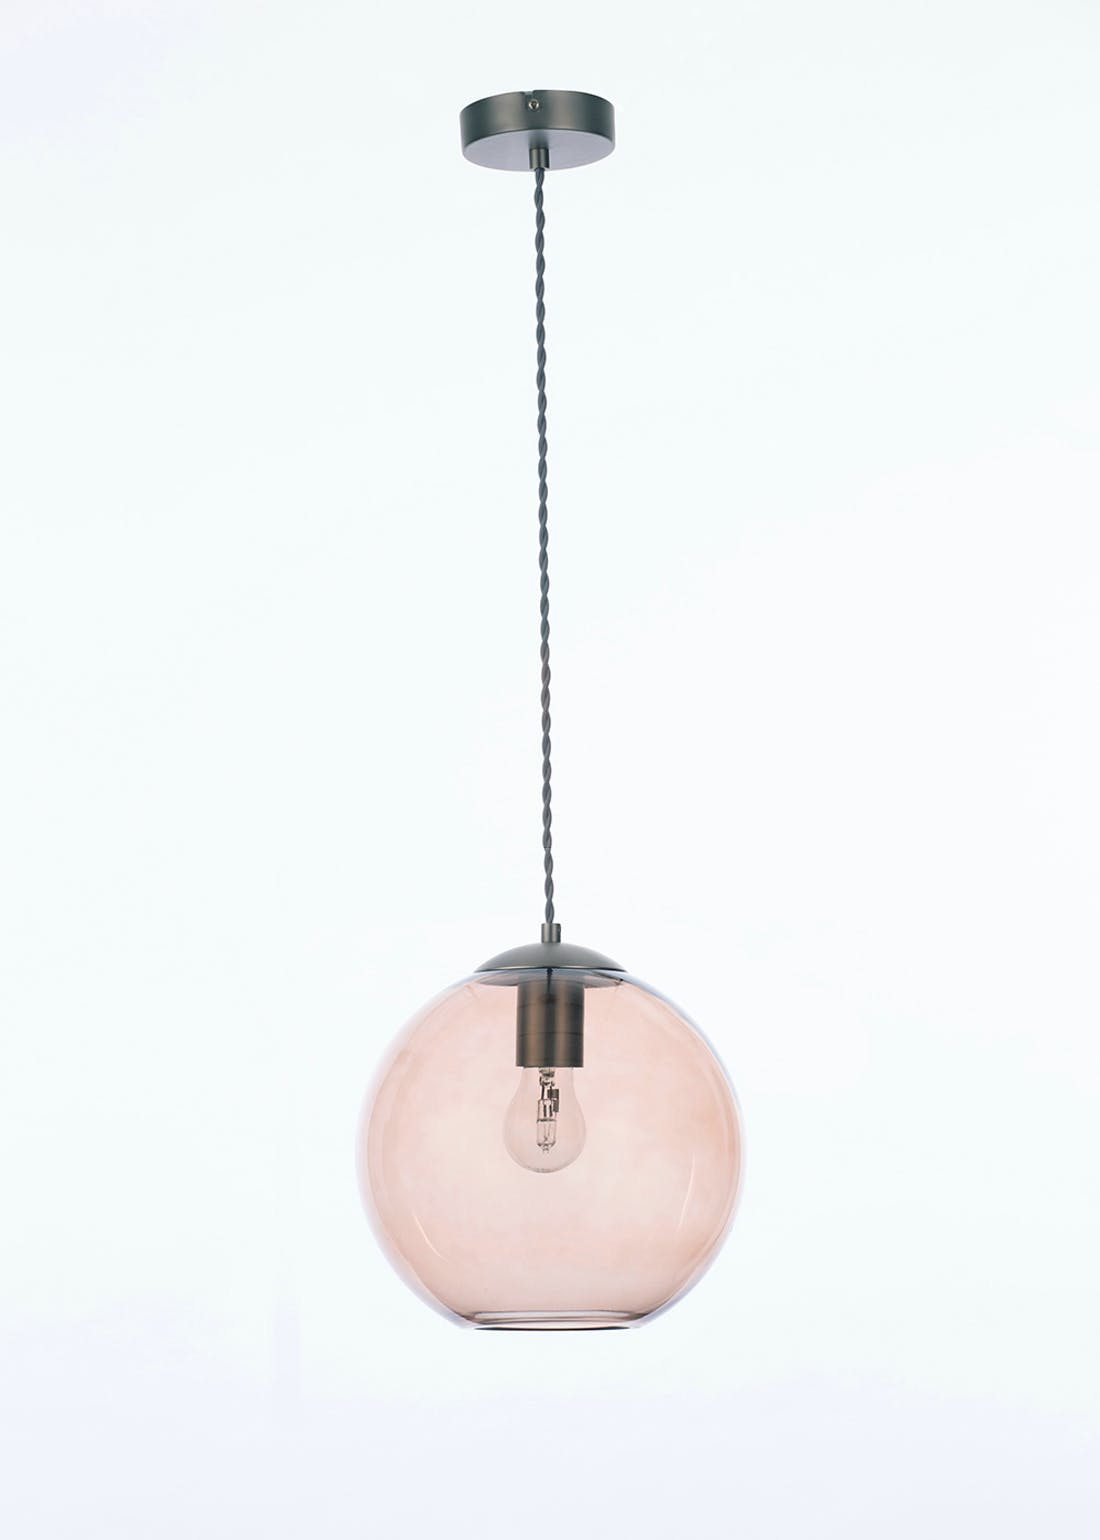 Inlight Elena Glass Ceiling Pendant Light (150cm x 25cm x 25cm)